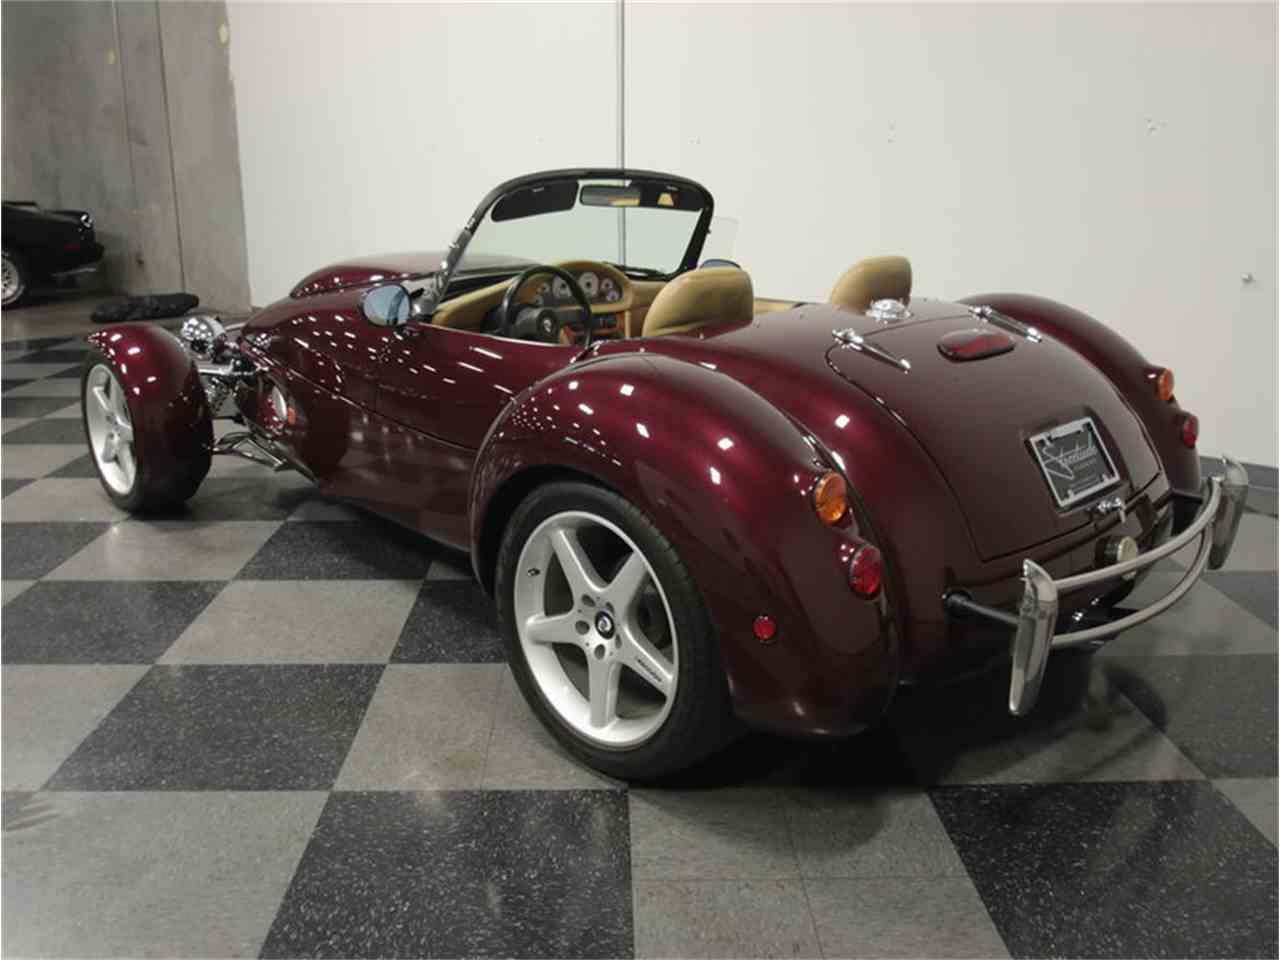 Large Picture of 1998 Panoz AIV Roadster Supercharged located in Georgia - JPDH